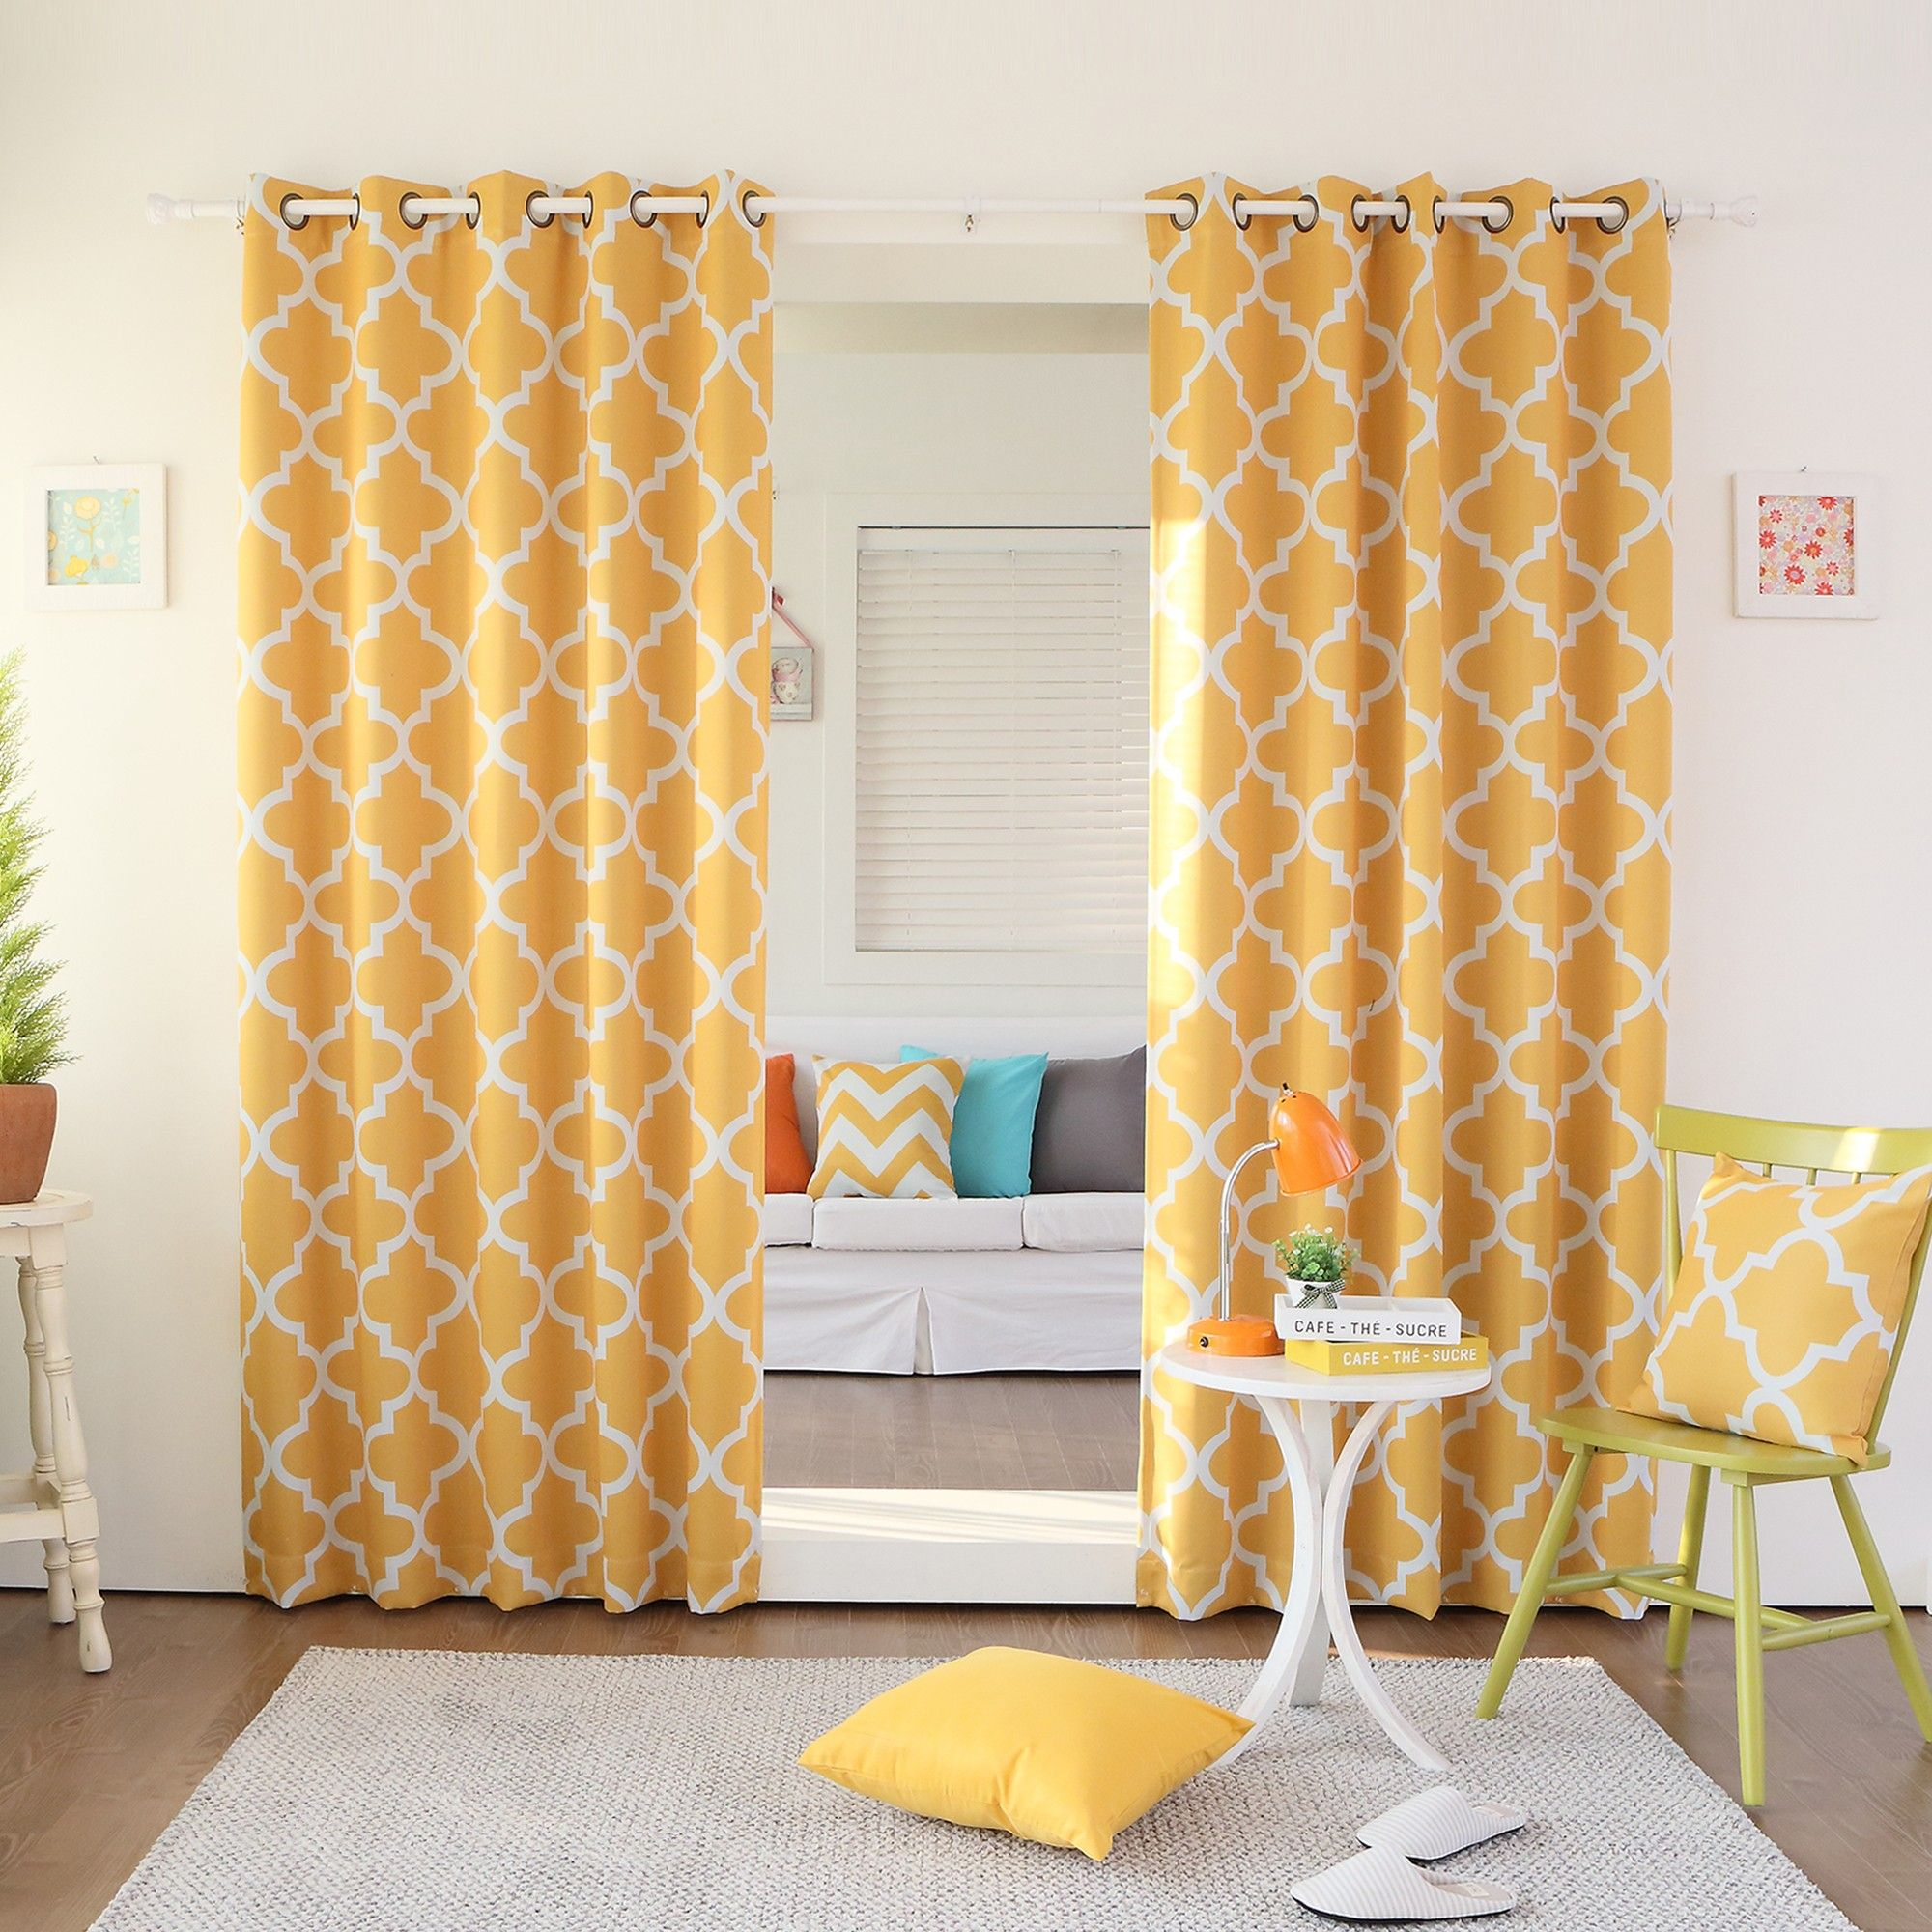 alluring accessories pictures orange of curtains panelslight size curtain panels decorating inspirations rare pair full light